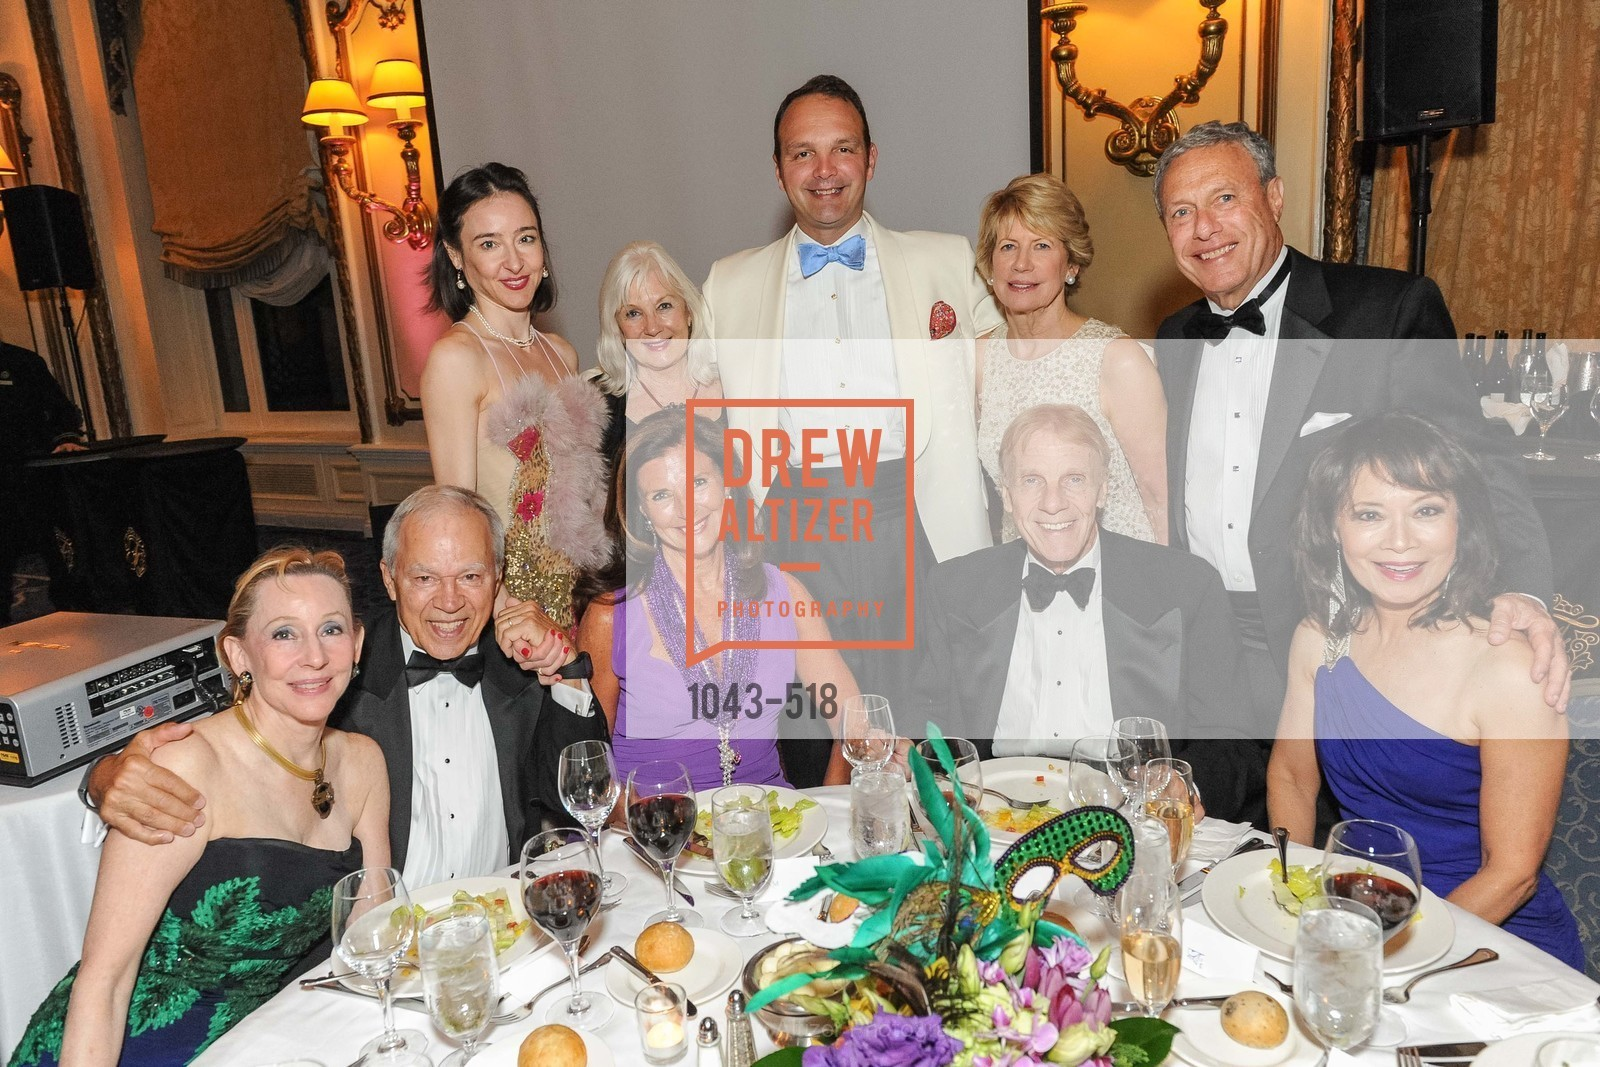 Pamela Rigg, Tom Burkhart, Chandra Rudd, Linda Zider, Arlene Inch, Guillaume Orliac, Carol Burkhart, Richard Rigg, MEROLA OPERA Spring Benefit 2014:  A Night in New Orleans, US. Fairmont, April 12th, 2014,Drew Altizer, Drew Altizer Photography, full-service agency, private events, San Francisco photographer, photographer california